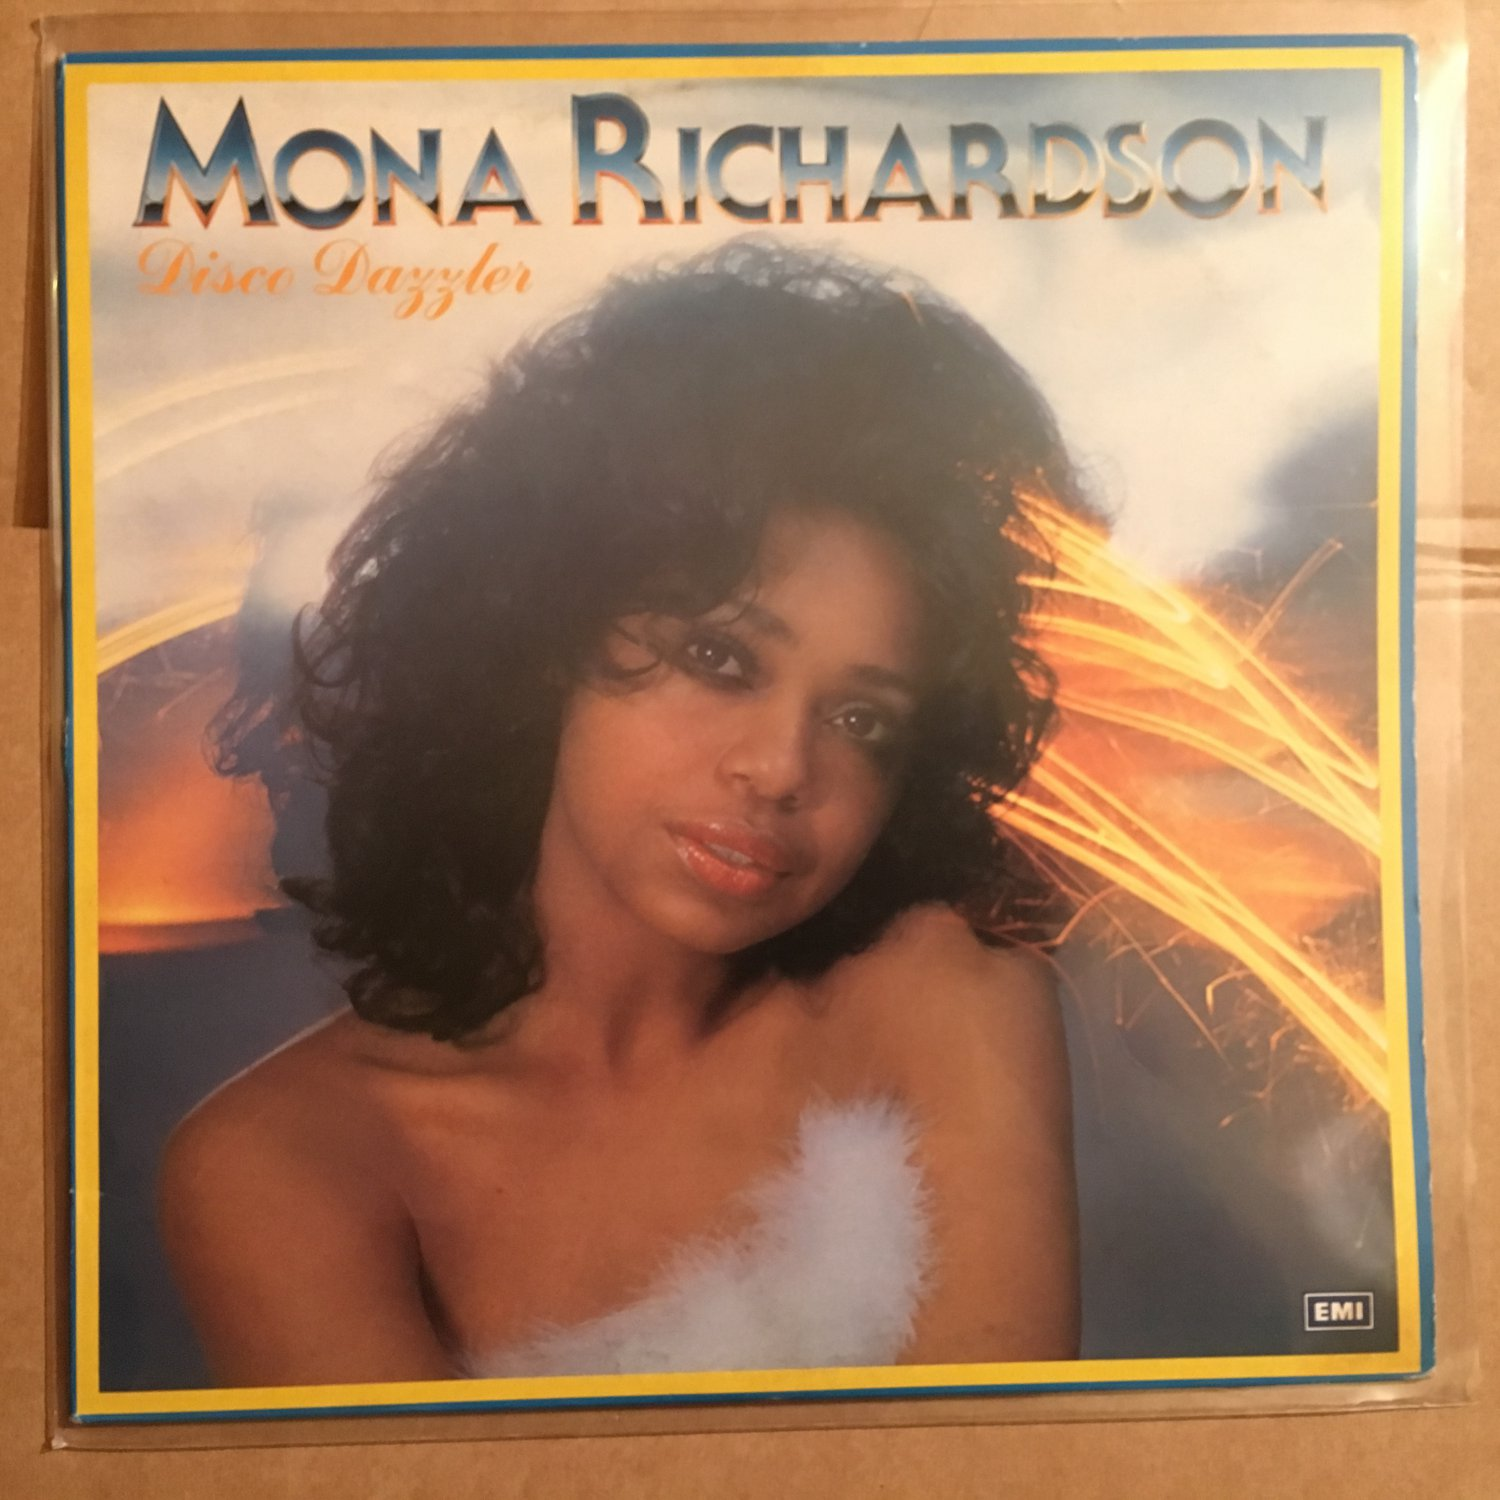 MONA RICHARDSON LP disco dazzler DISCO FUNK mp3 LISTEN